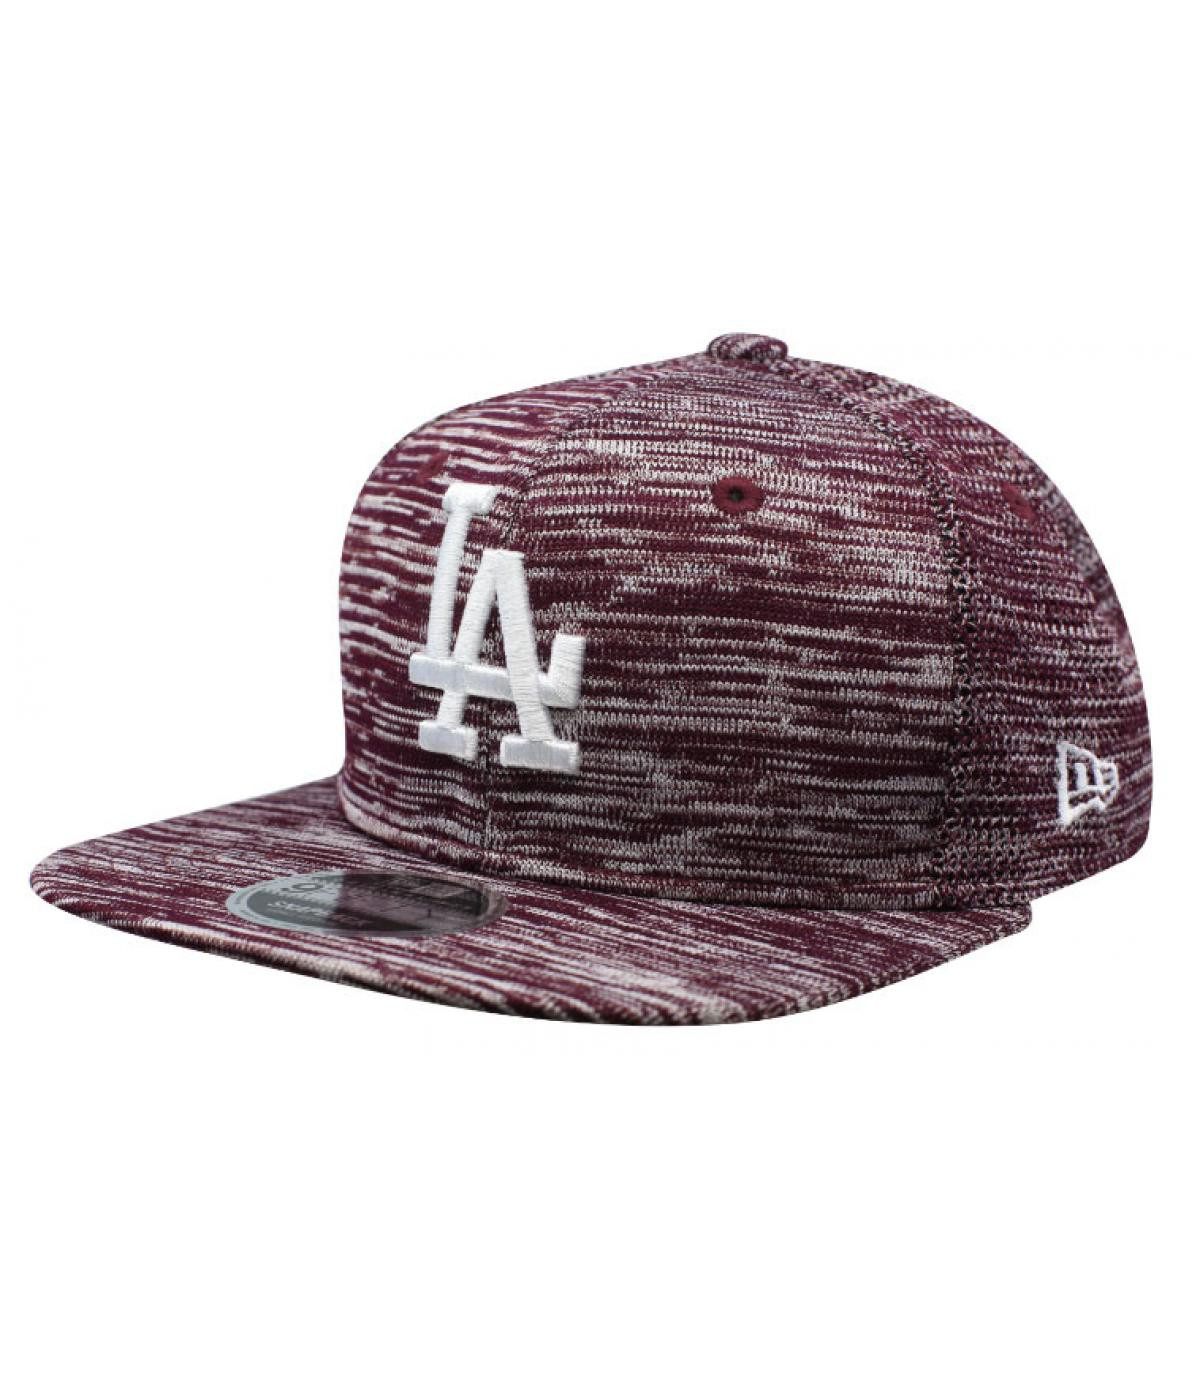 Details Enginnered Fit LA 9Fifty maroon - afbeeling 2